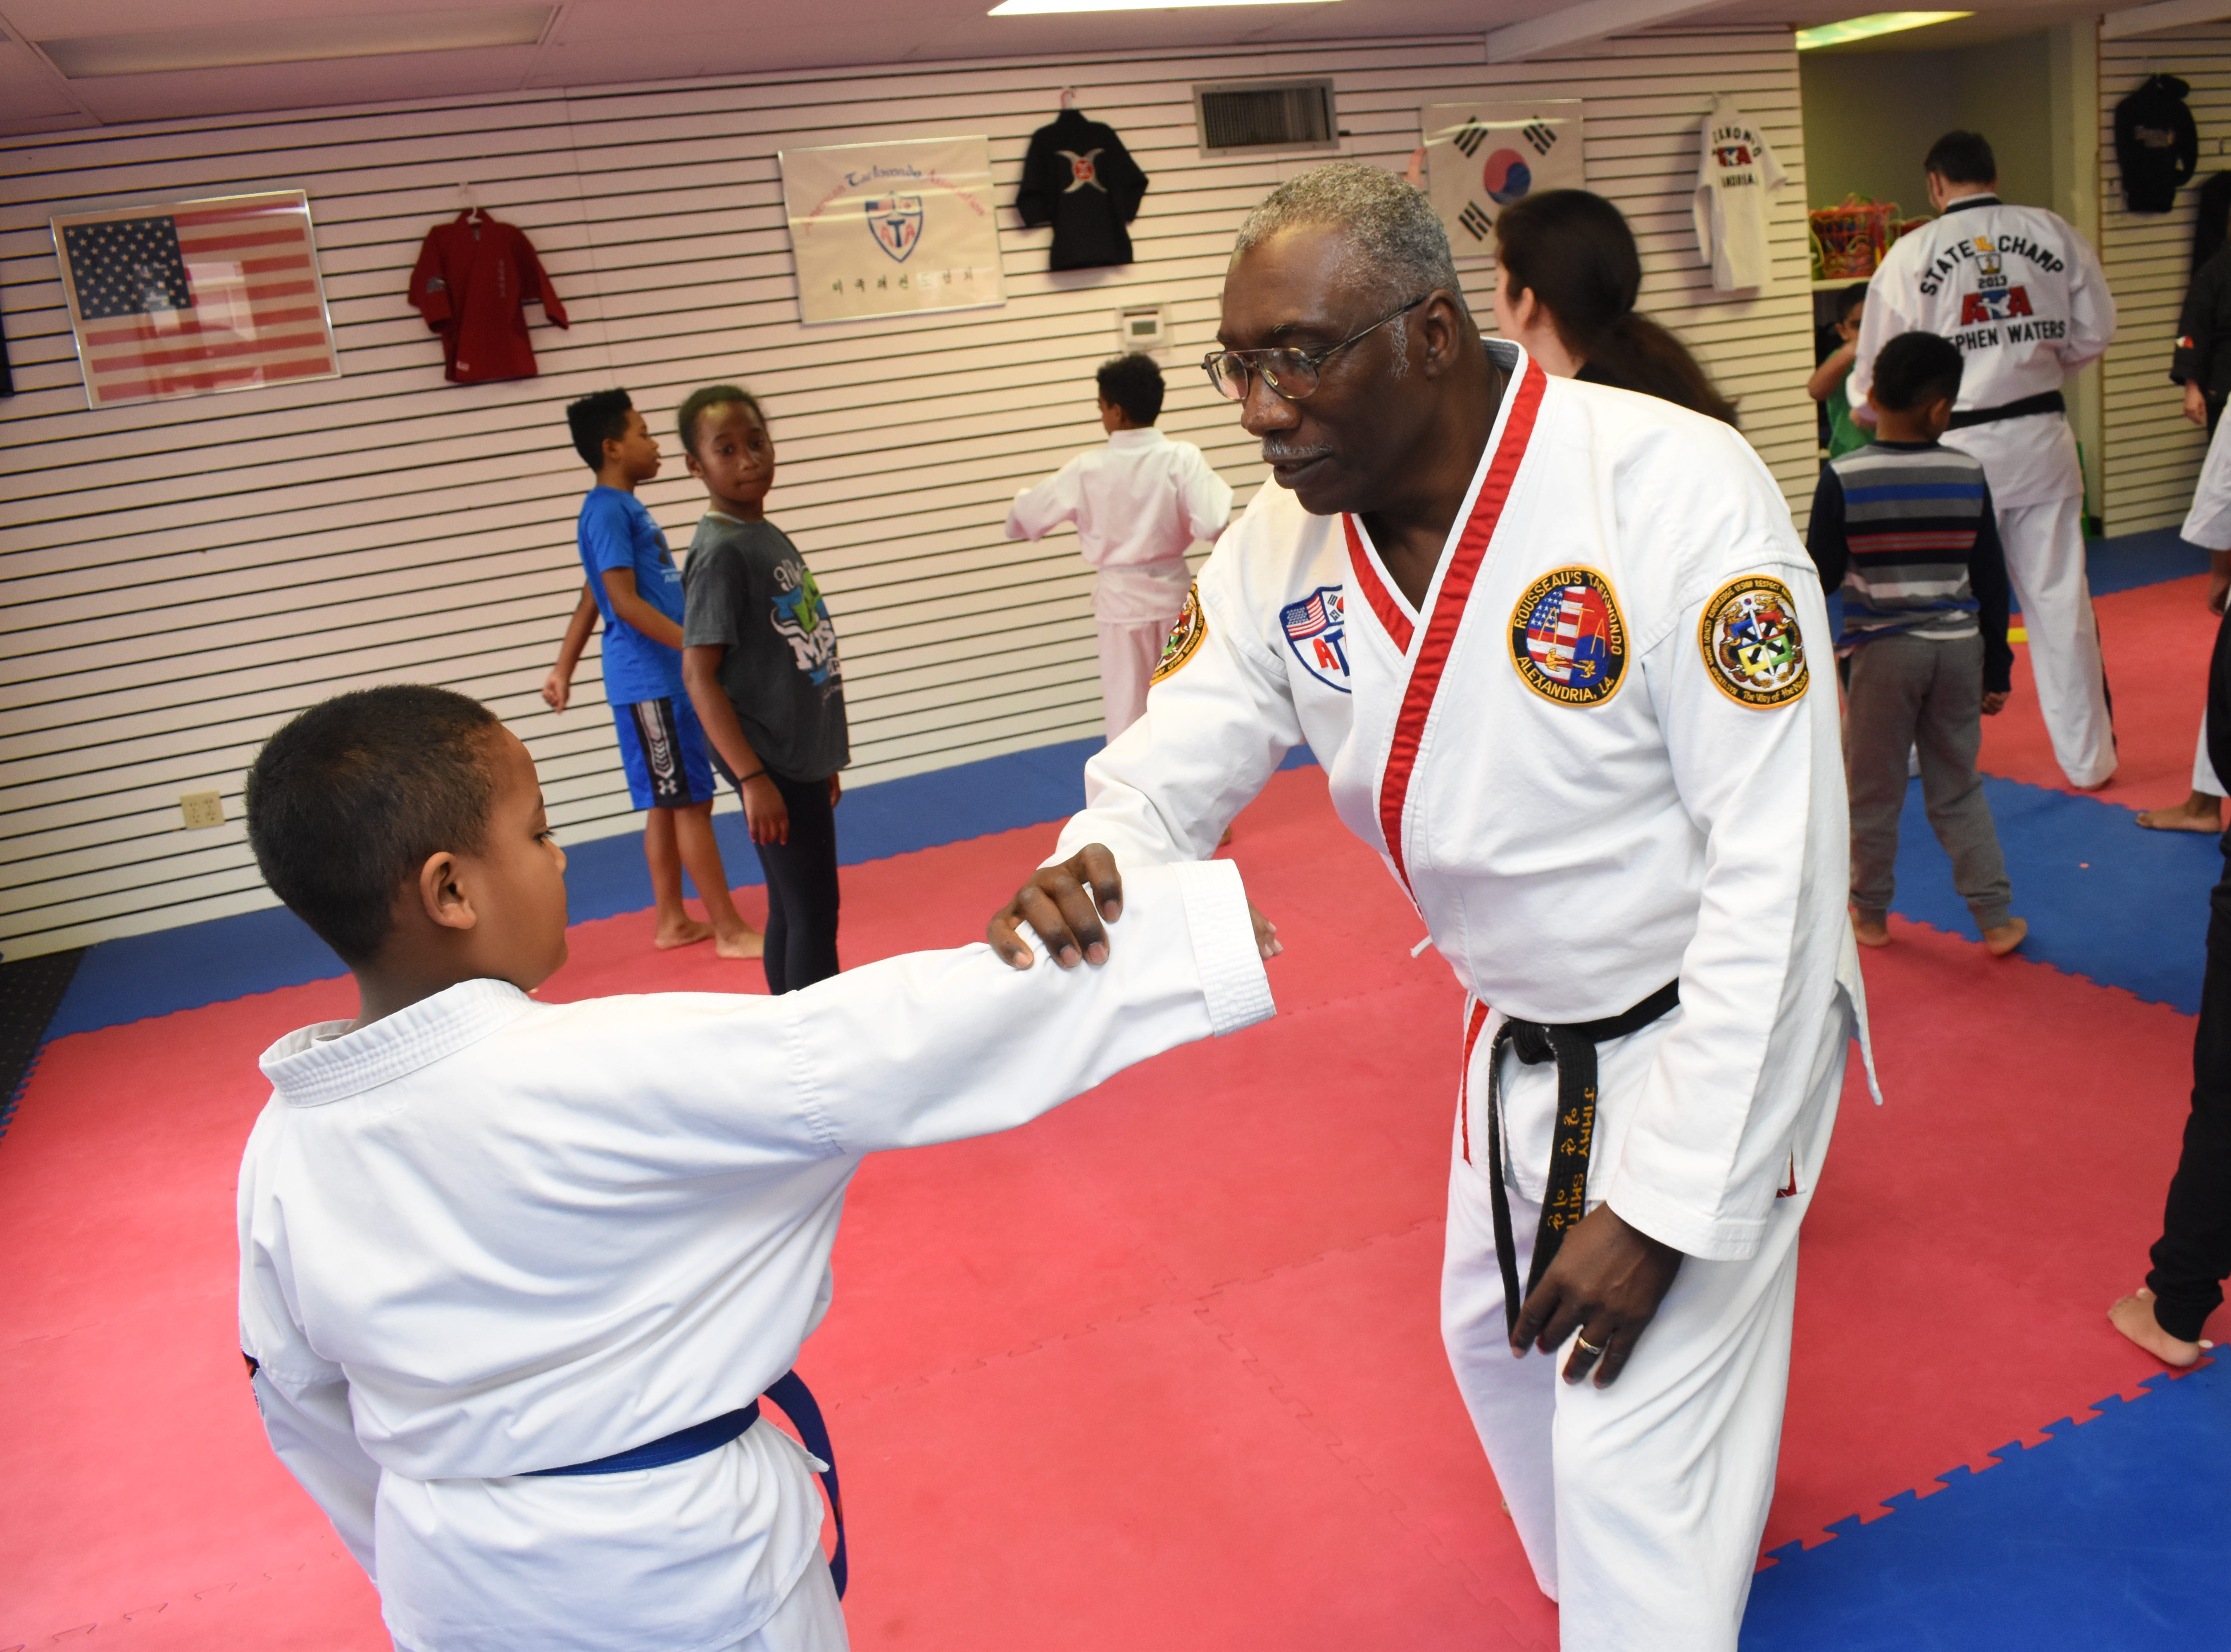 """A free """"Stranger Danger"""" defense class for children ages 7-12 was held Saturday, Feb. 16, 2019 at Master Rousseau's Taekwondo located on Jackson Street. Children were taught self-defense techniques to use if they to be grabbed by someone they did not know. They were advised to fight back and yell loudly. Also on hand to talk to the children were Rapides DARE officers Derek Parker with the Pineville Police Department and Vern Rennier with the Alexandria Police Department."""